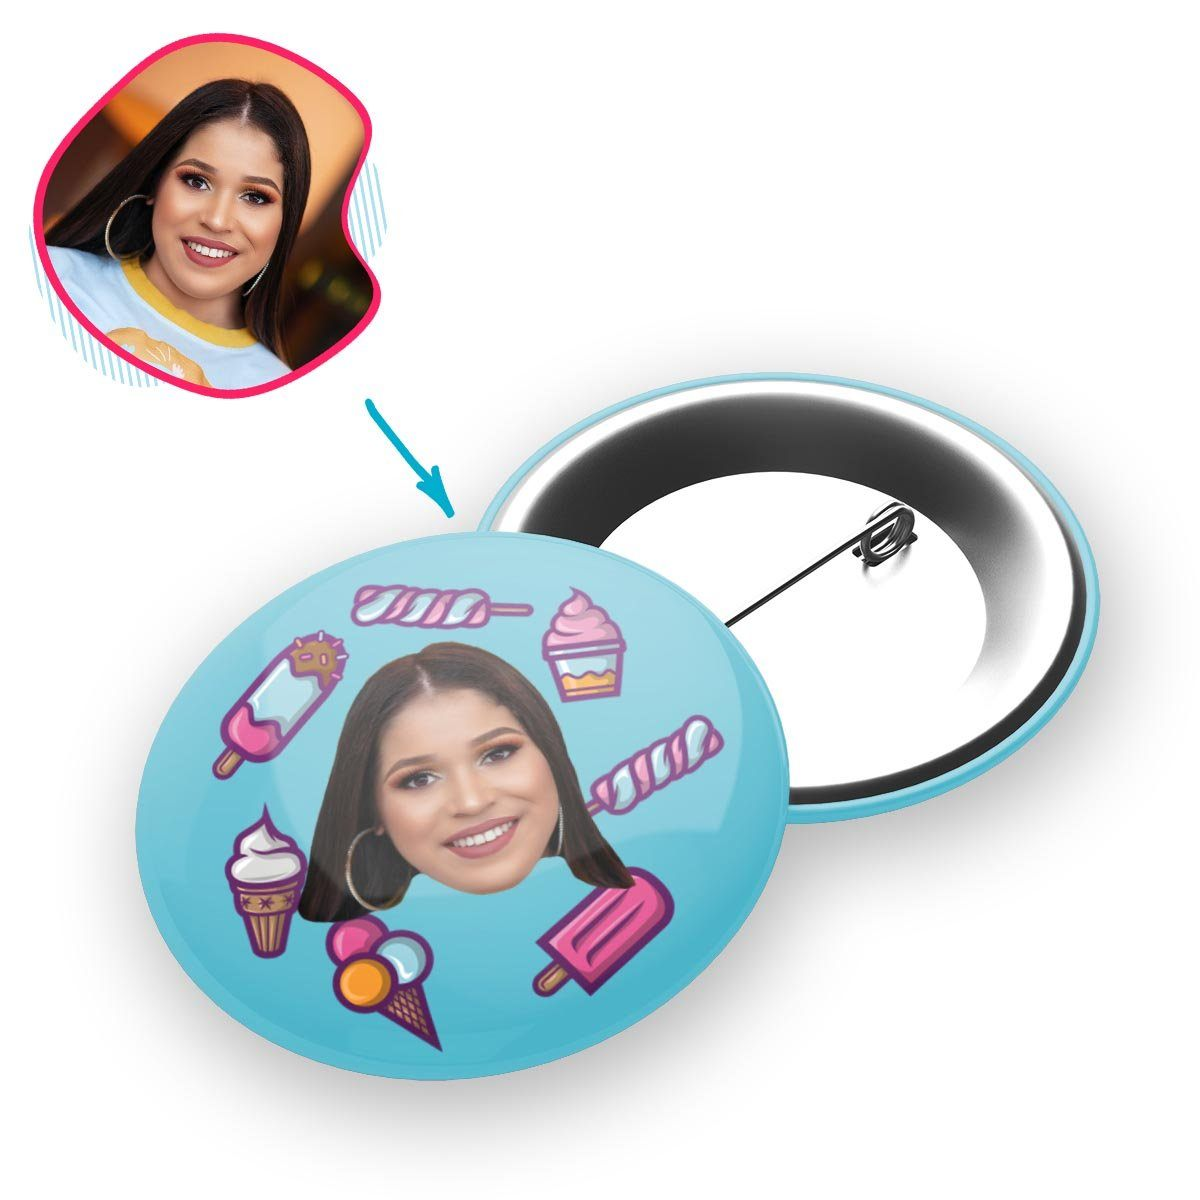 blue Candies pin personalized with photo of face printed on it